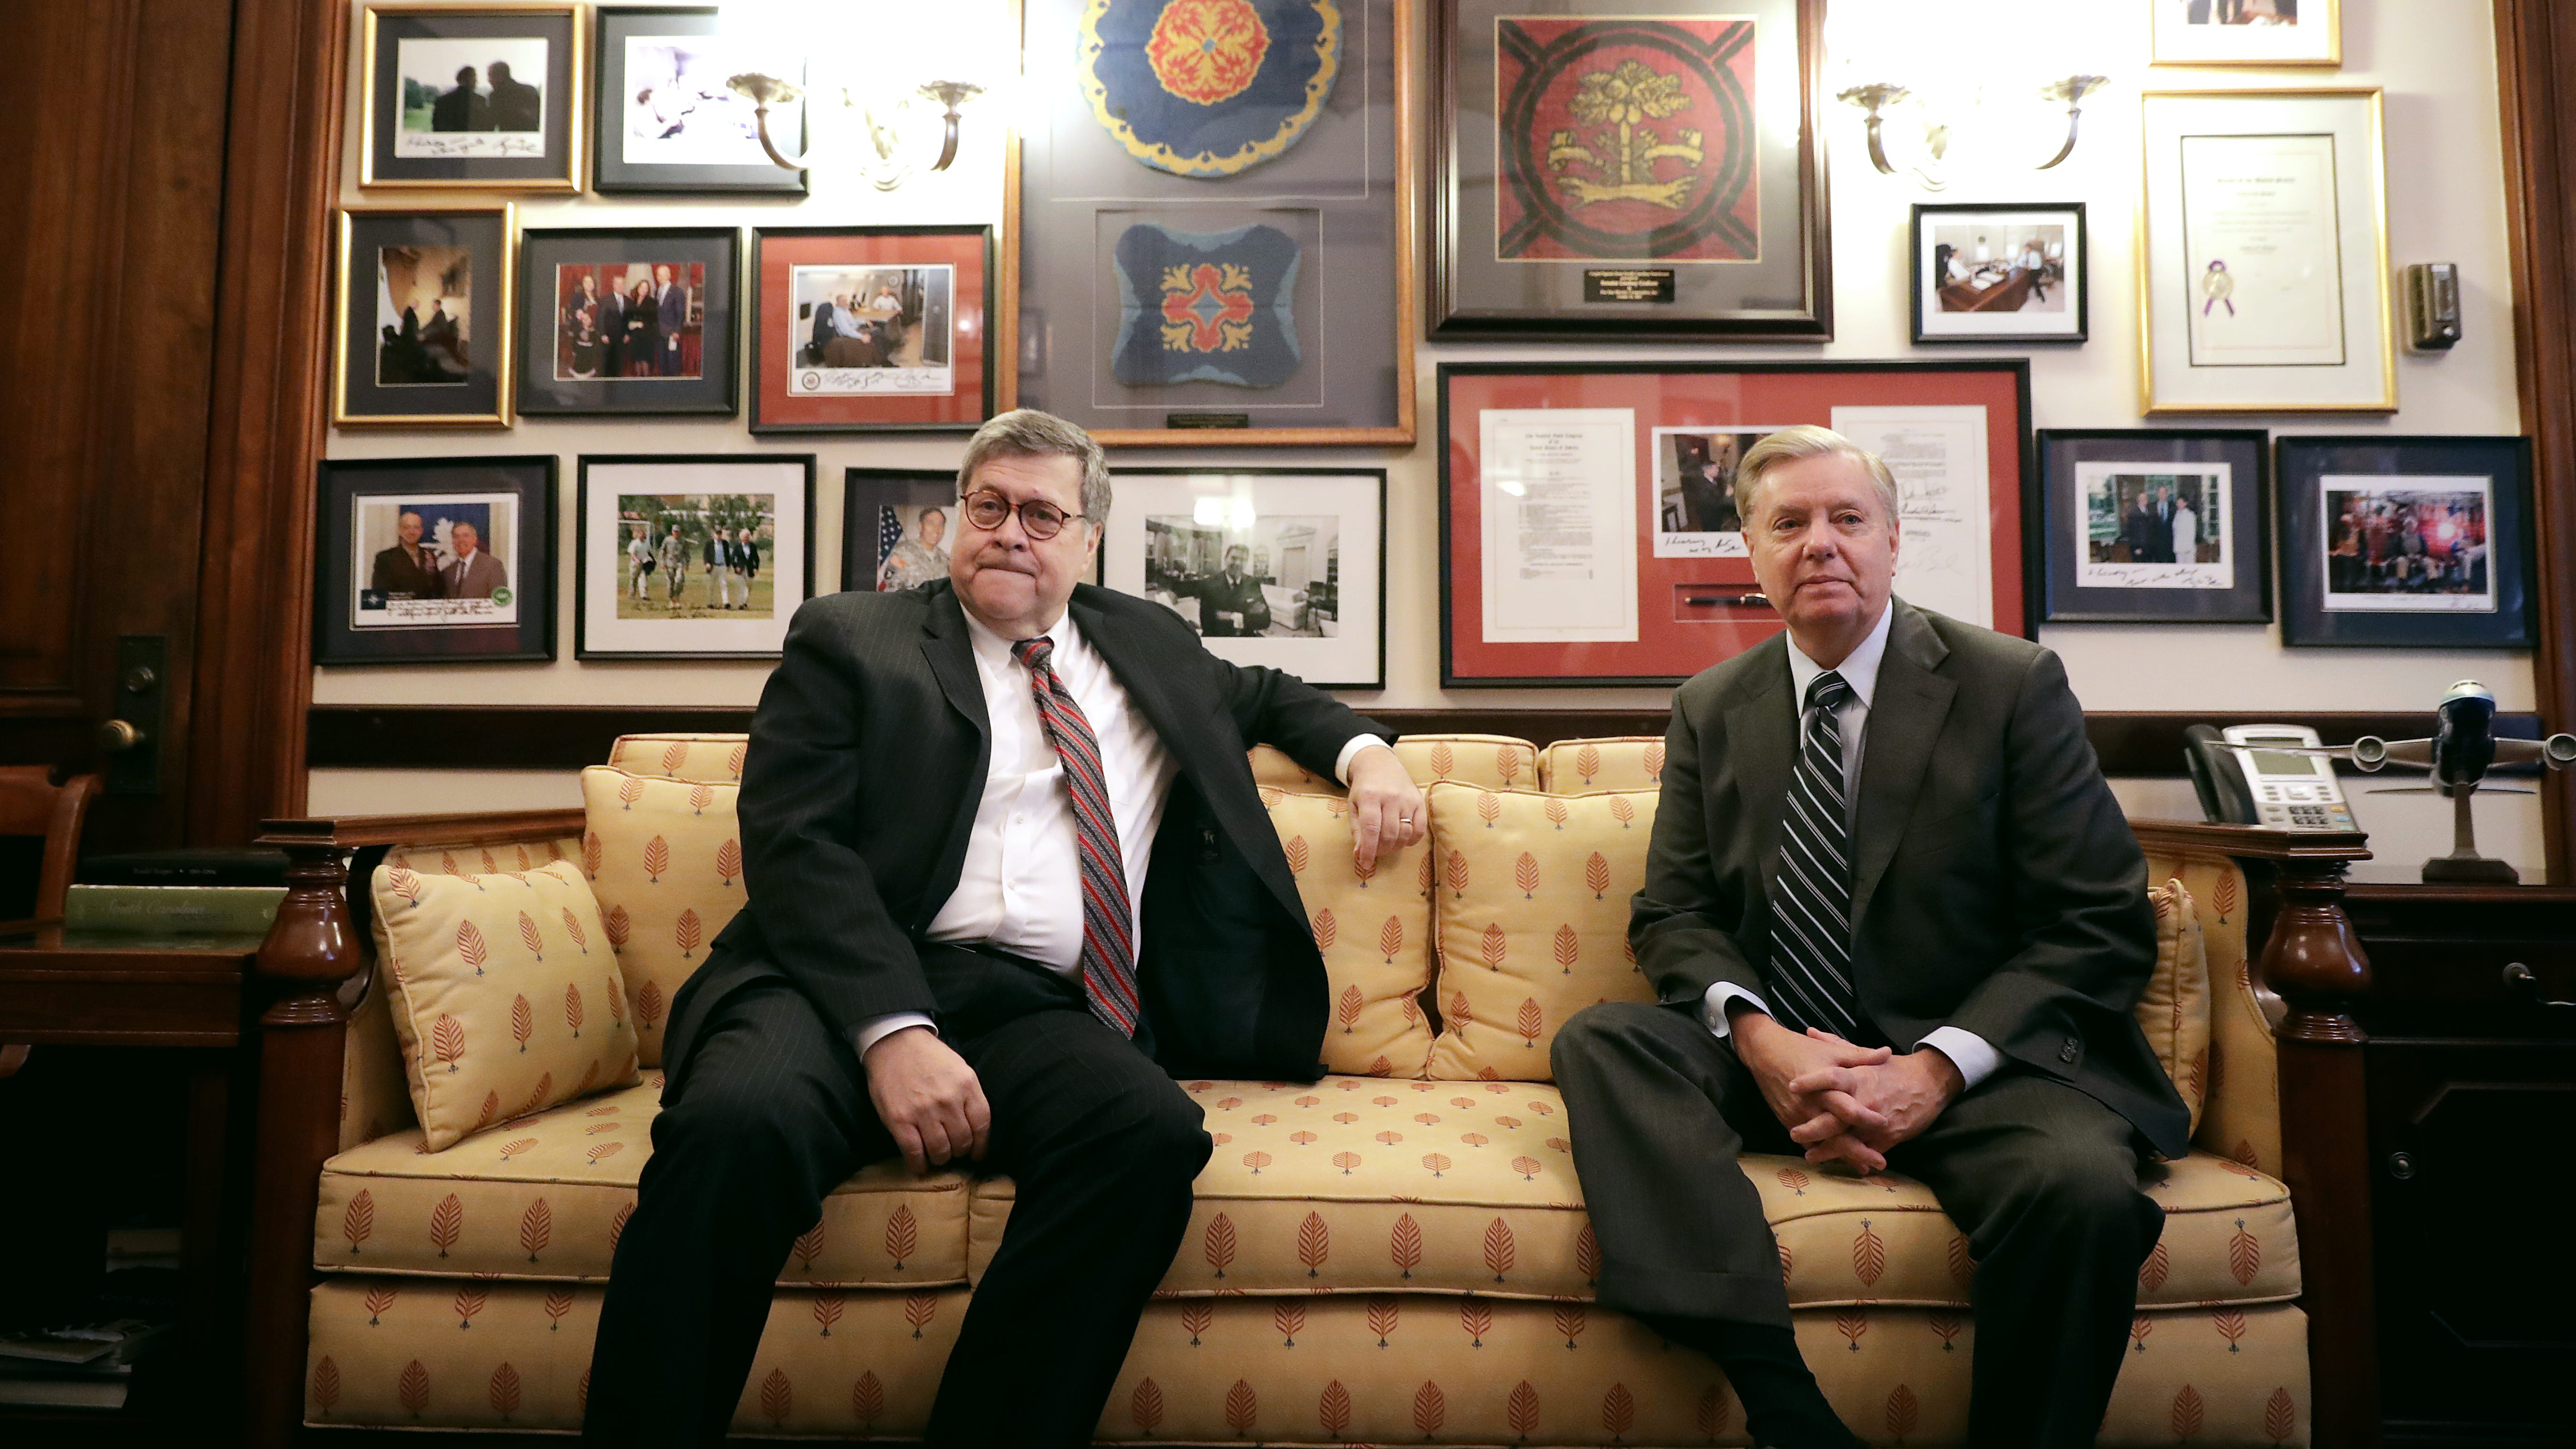 WASHINGTON, DC - JANUARY 09: Attorney General nominee William Barr (L) poses for photographs before a meeting with Senate Judiciary Committee member Sen. Lindsey Graham (R-SC) in his office in the Russell Senate Office Building on Capitol Hill January 09, 2019 in Washington, DC. Barr's confirmation hearing is scheduled for next week.  (Photo by Chip Somodevilla/Getty Images) ORG XMIT: 775279432 ORIG FILE ID: 1091785708